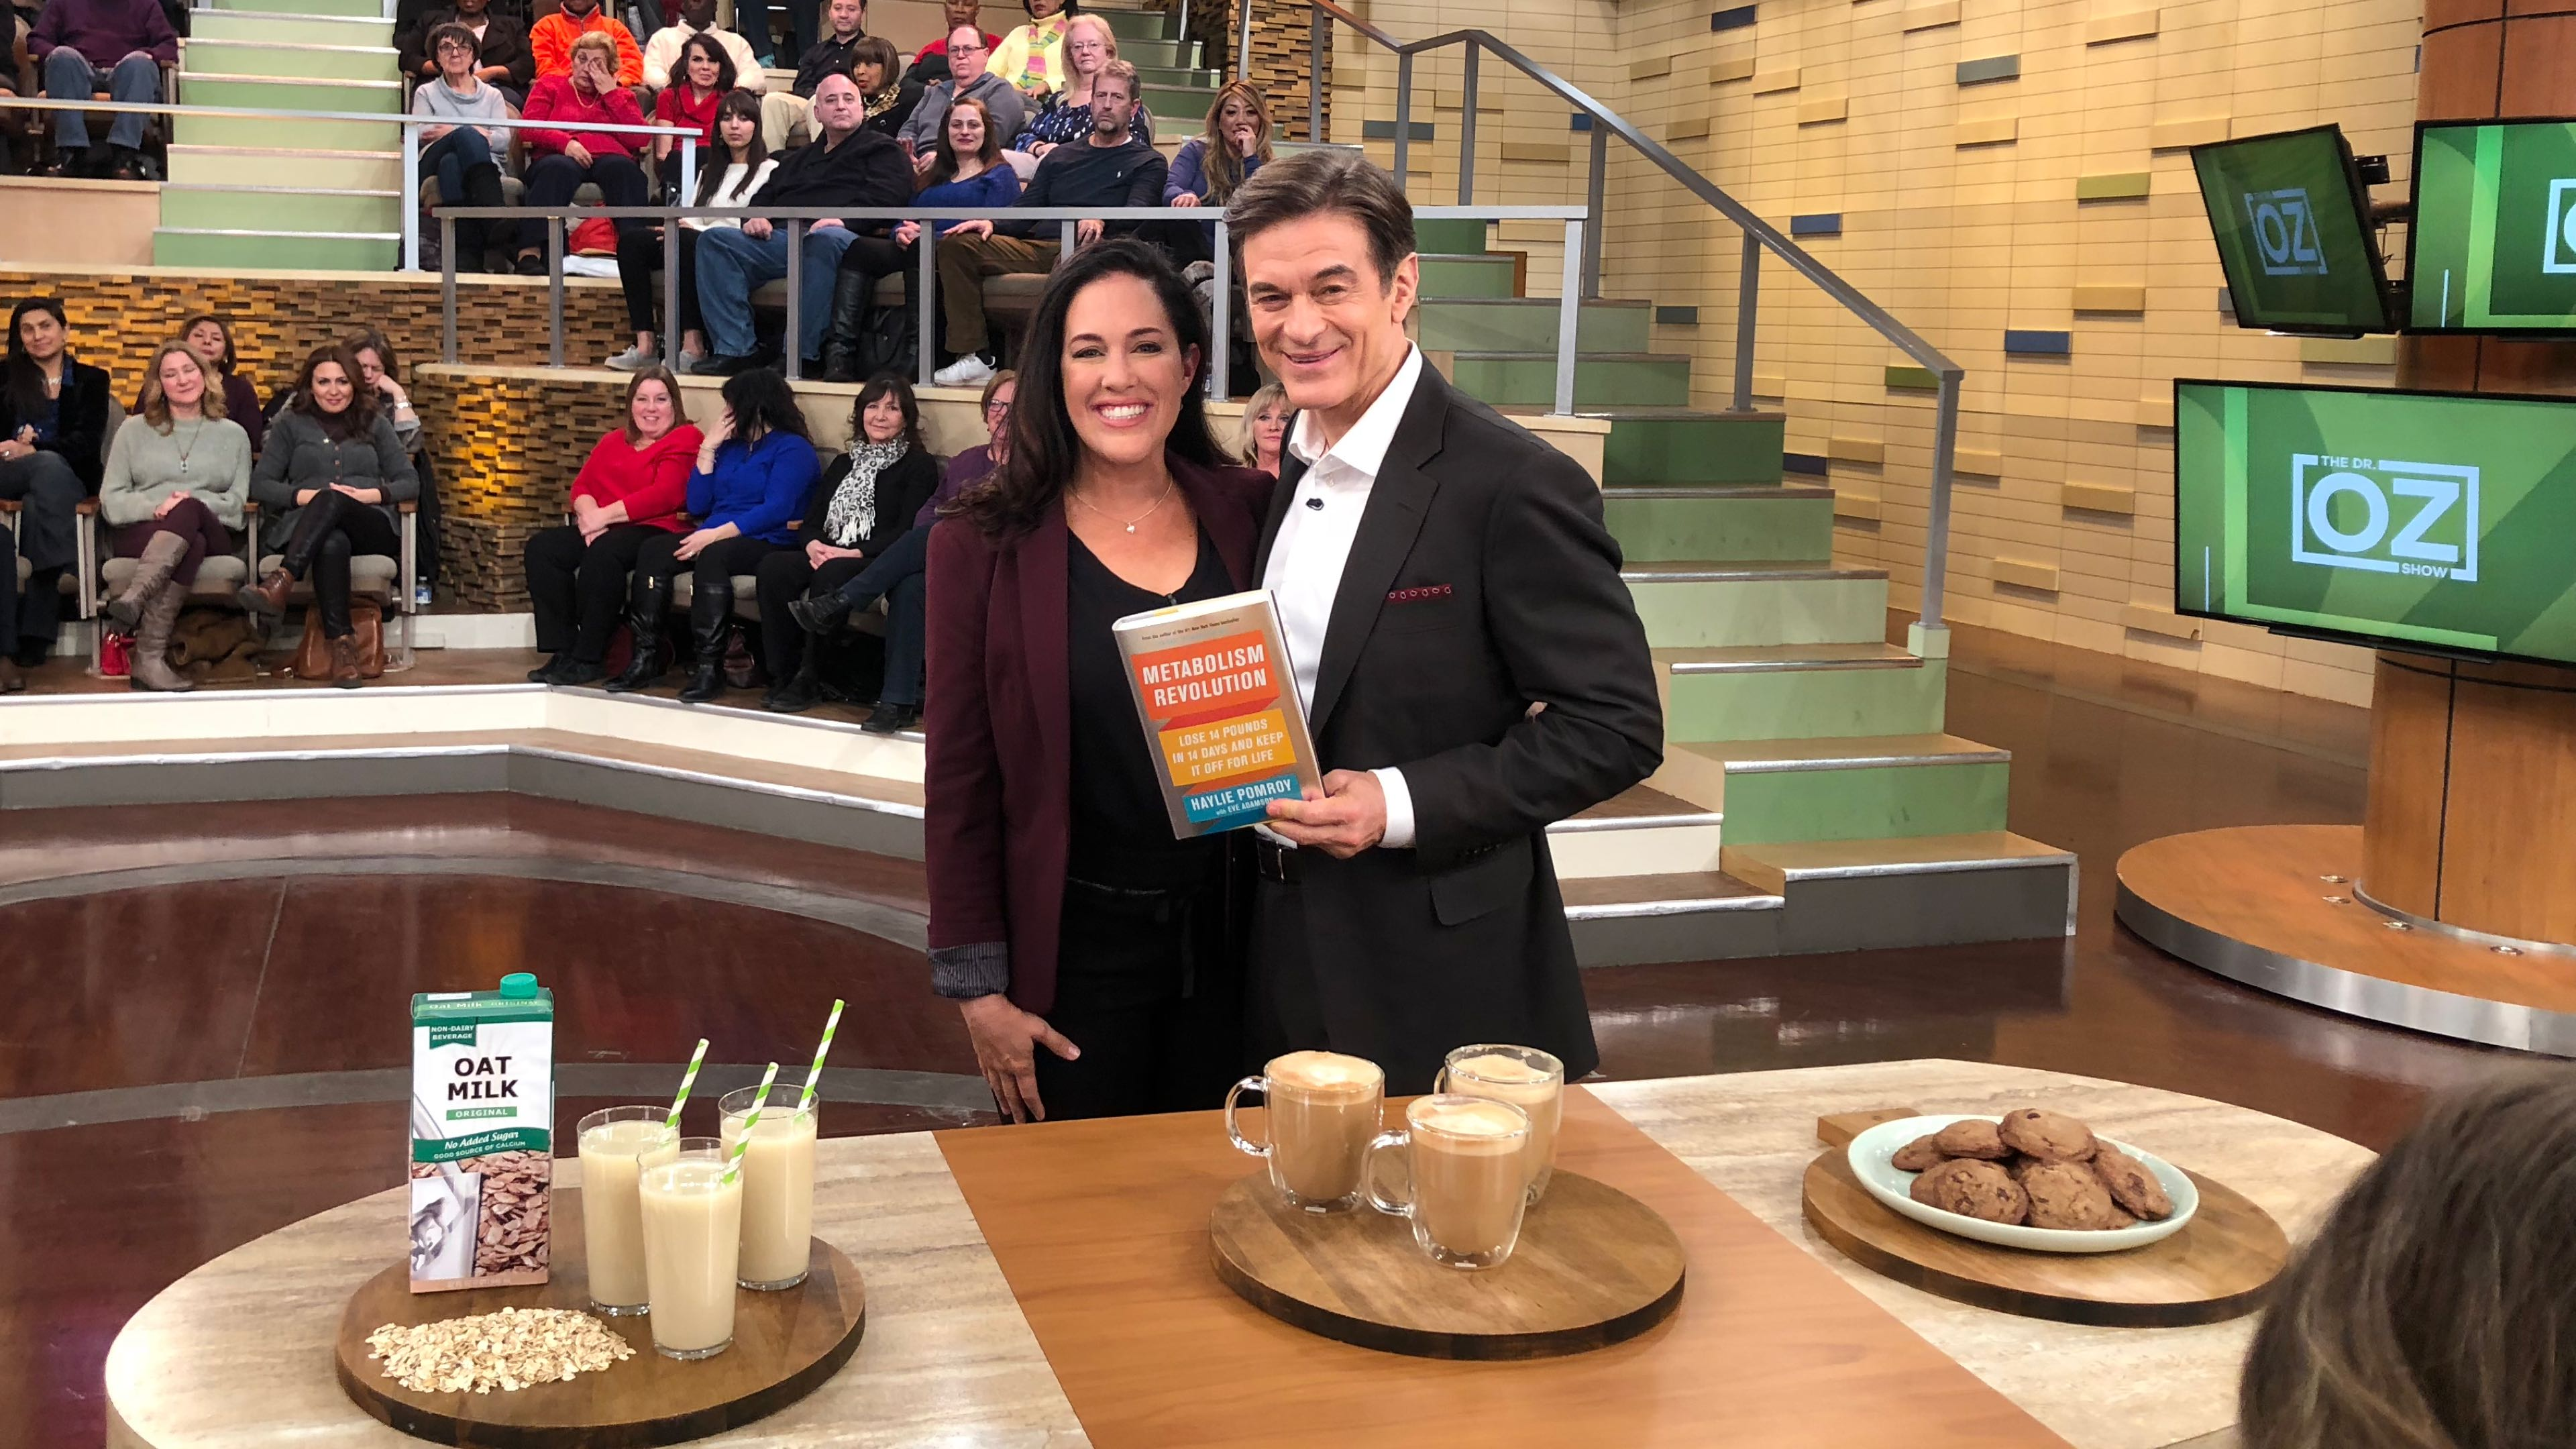 Haylie Pomroy on the Dr. Oz show